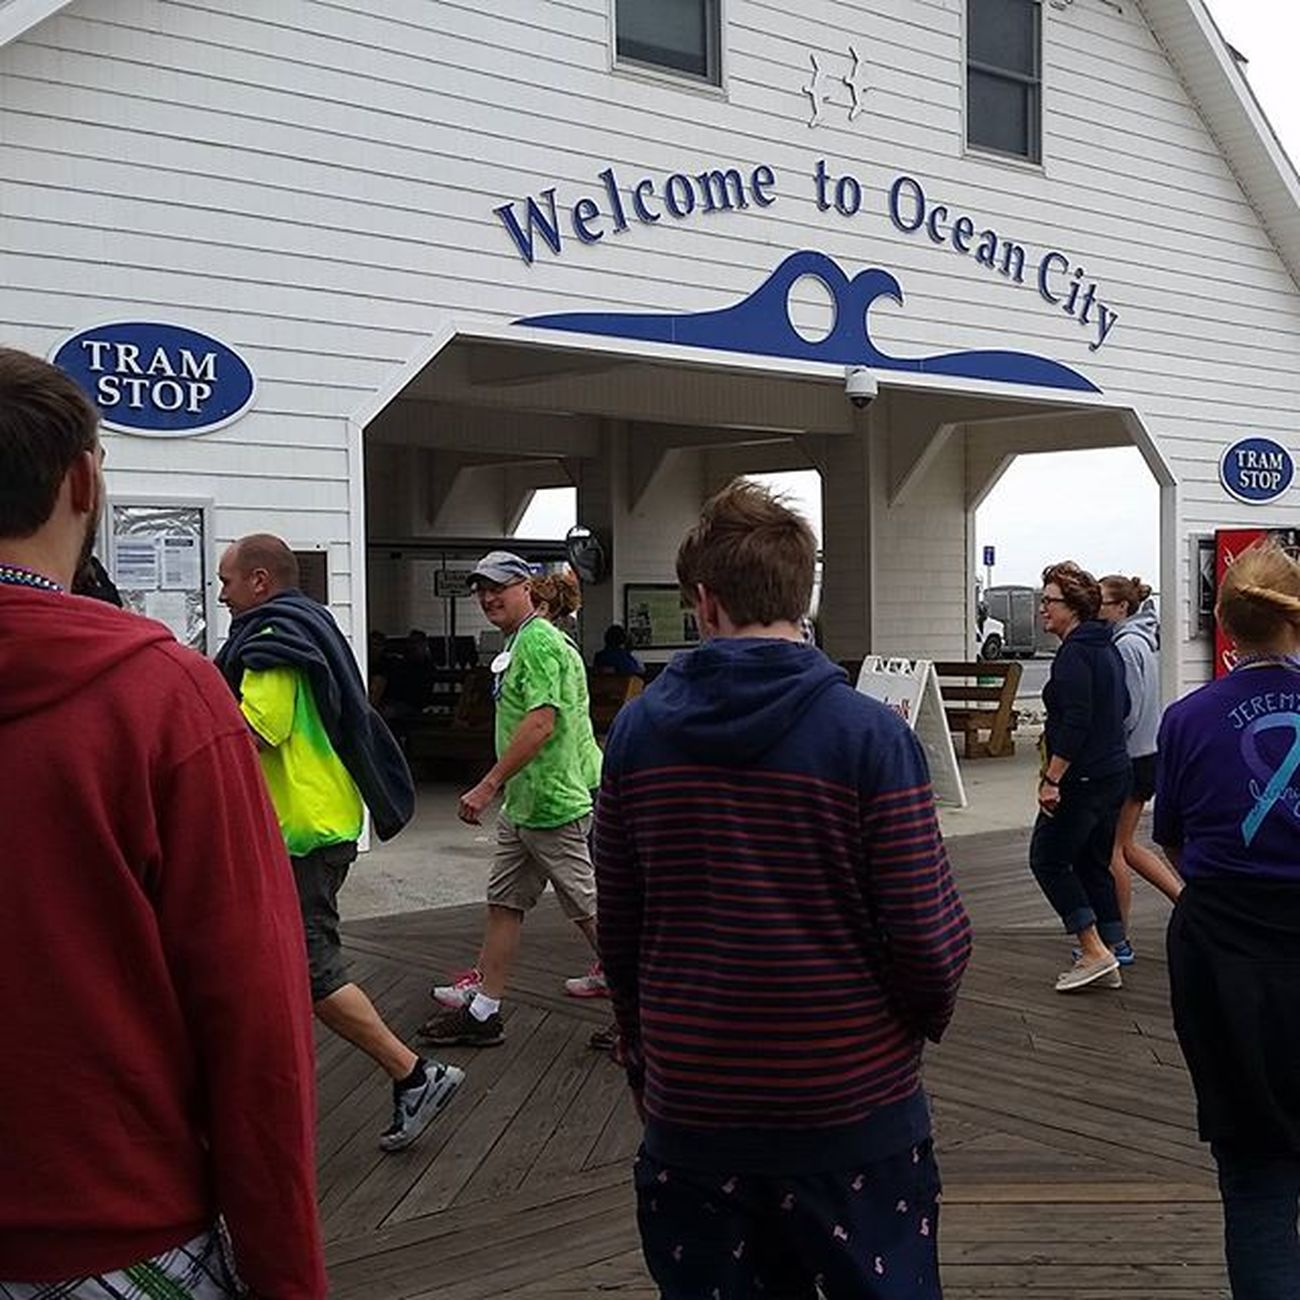 OC Suicide Prevention Walk 2015 making the turn at the Ocean City Tram Stop... Suicidewalk2015 Suicideprevention Oceancitycool OceanCity maryland ocmd